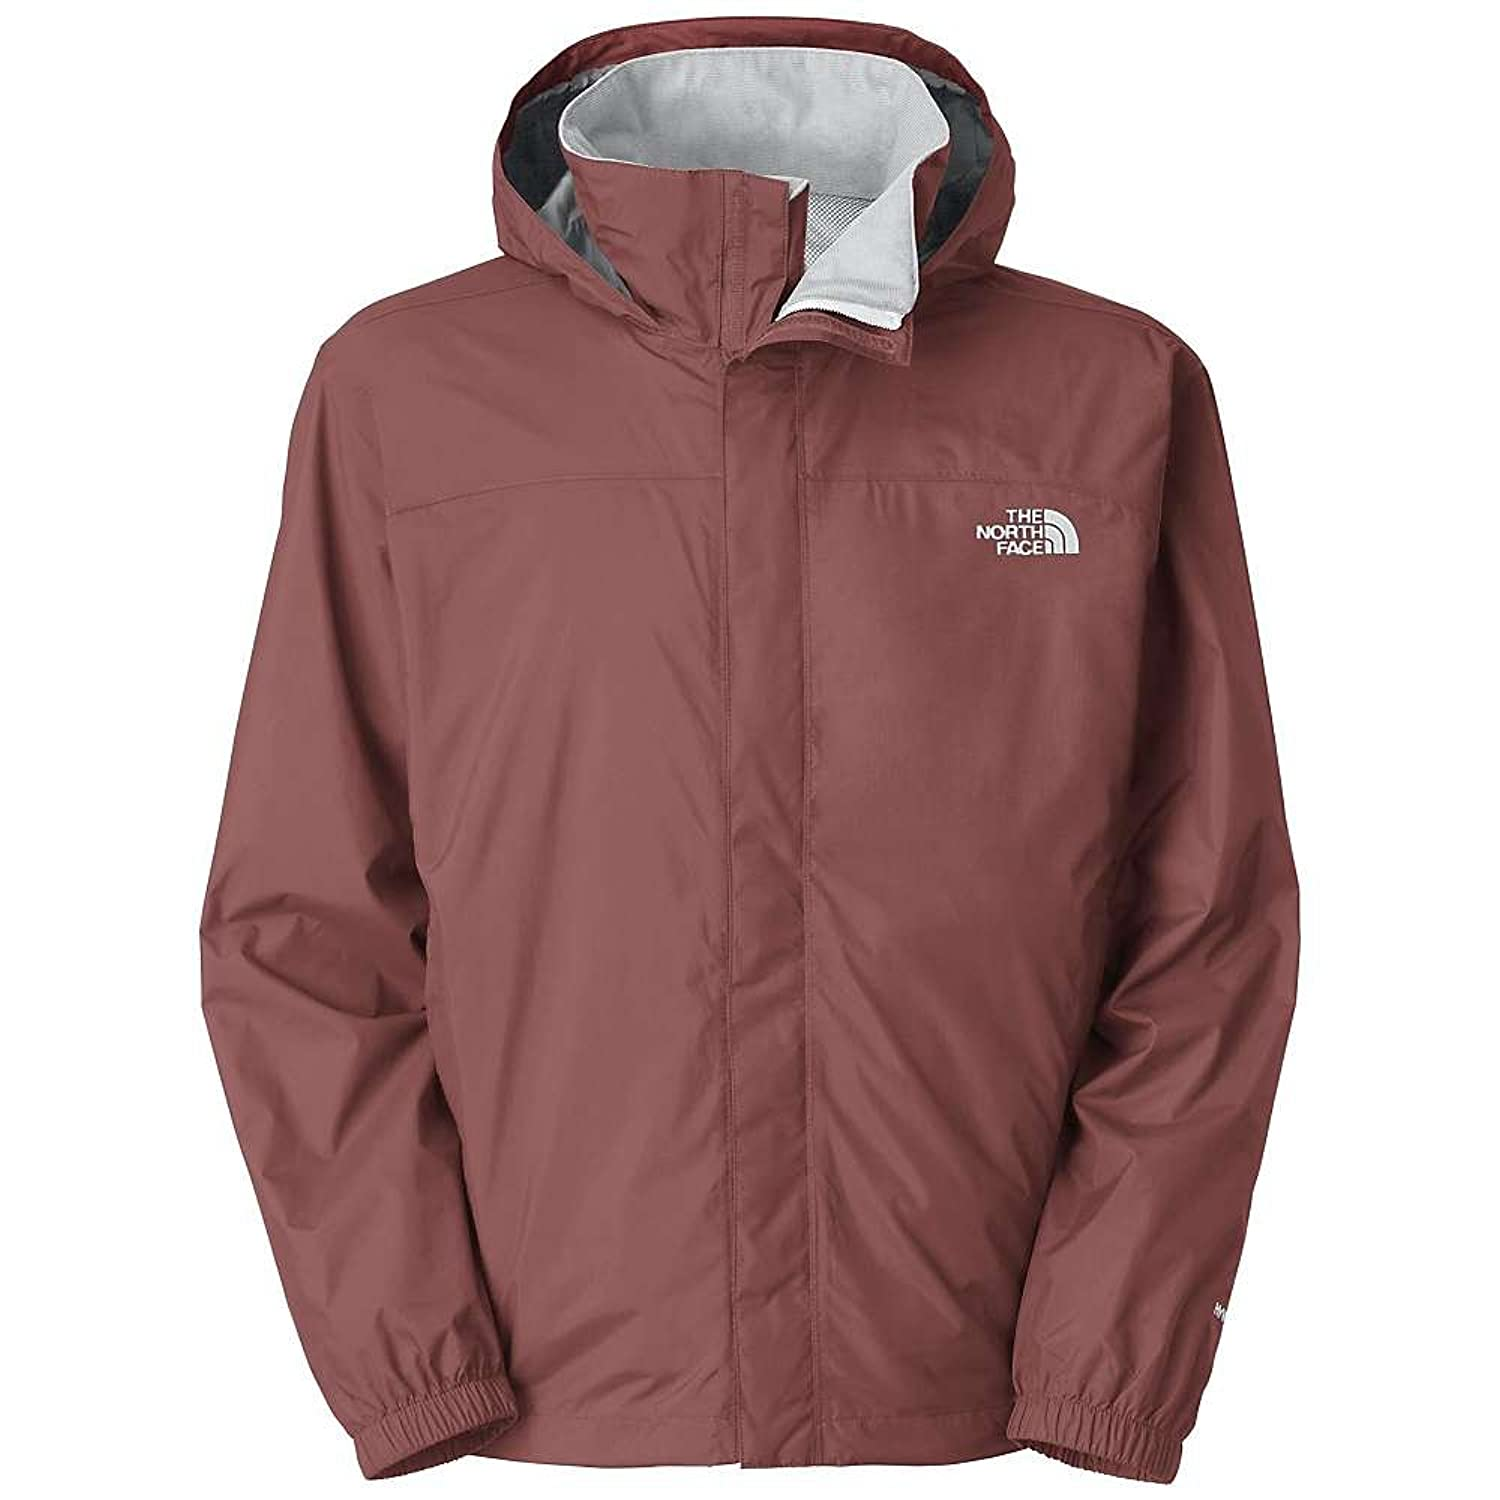 The North Face Men's Resolve Jacket ботинки the north face the north face th016awvyk57